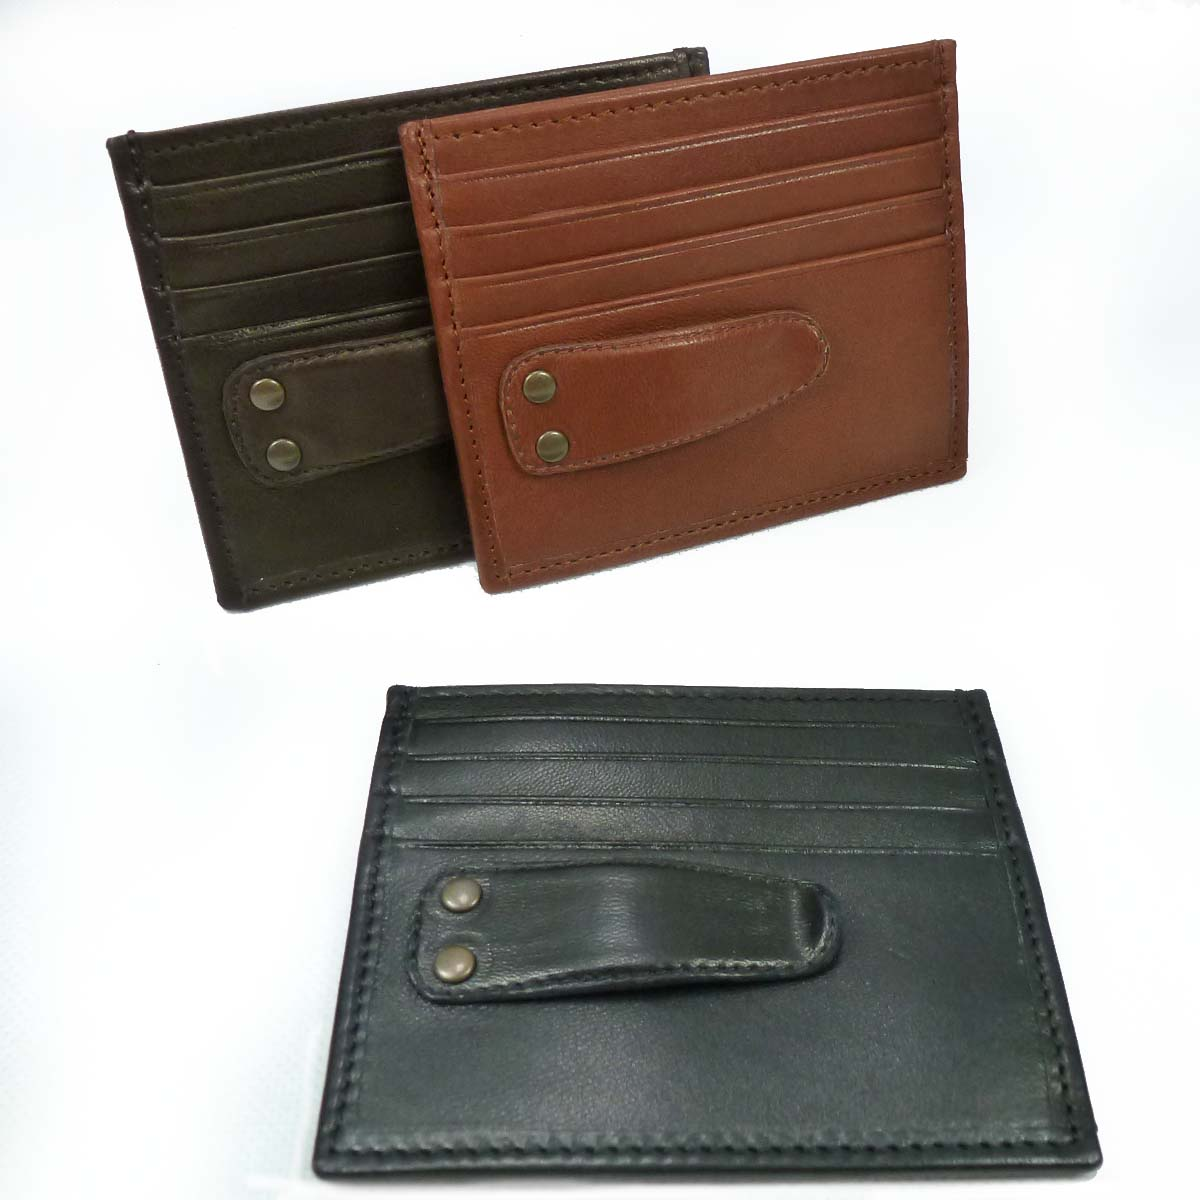 1332 Money clip with 8 credit cards pockets by Bottega Fiorentina